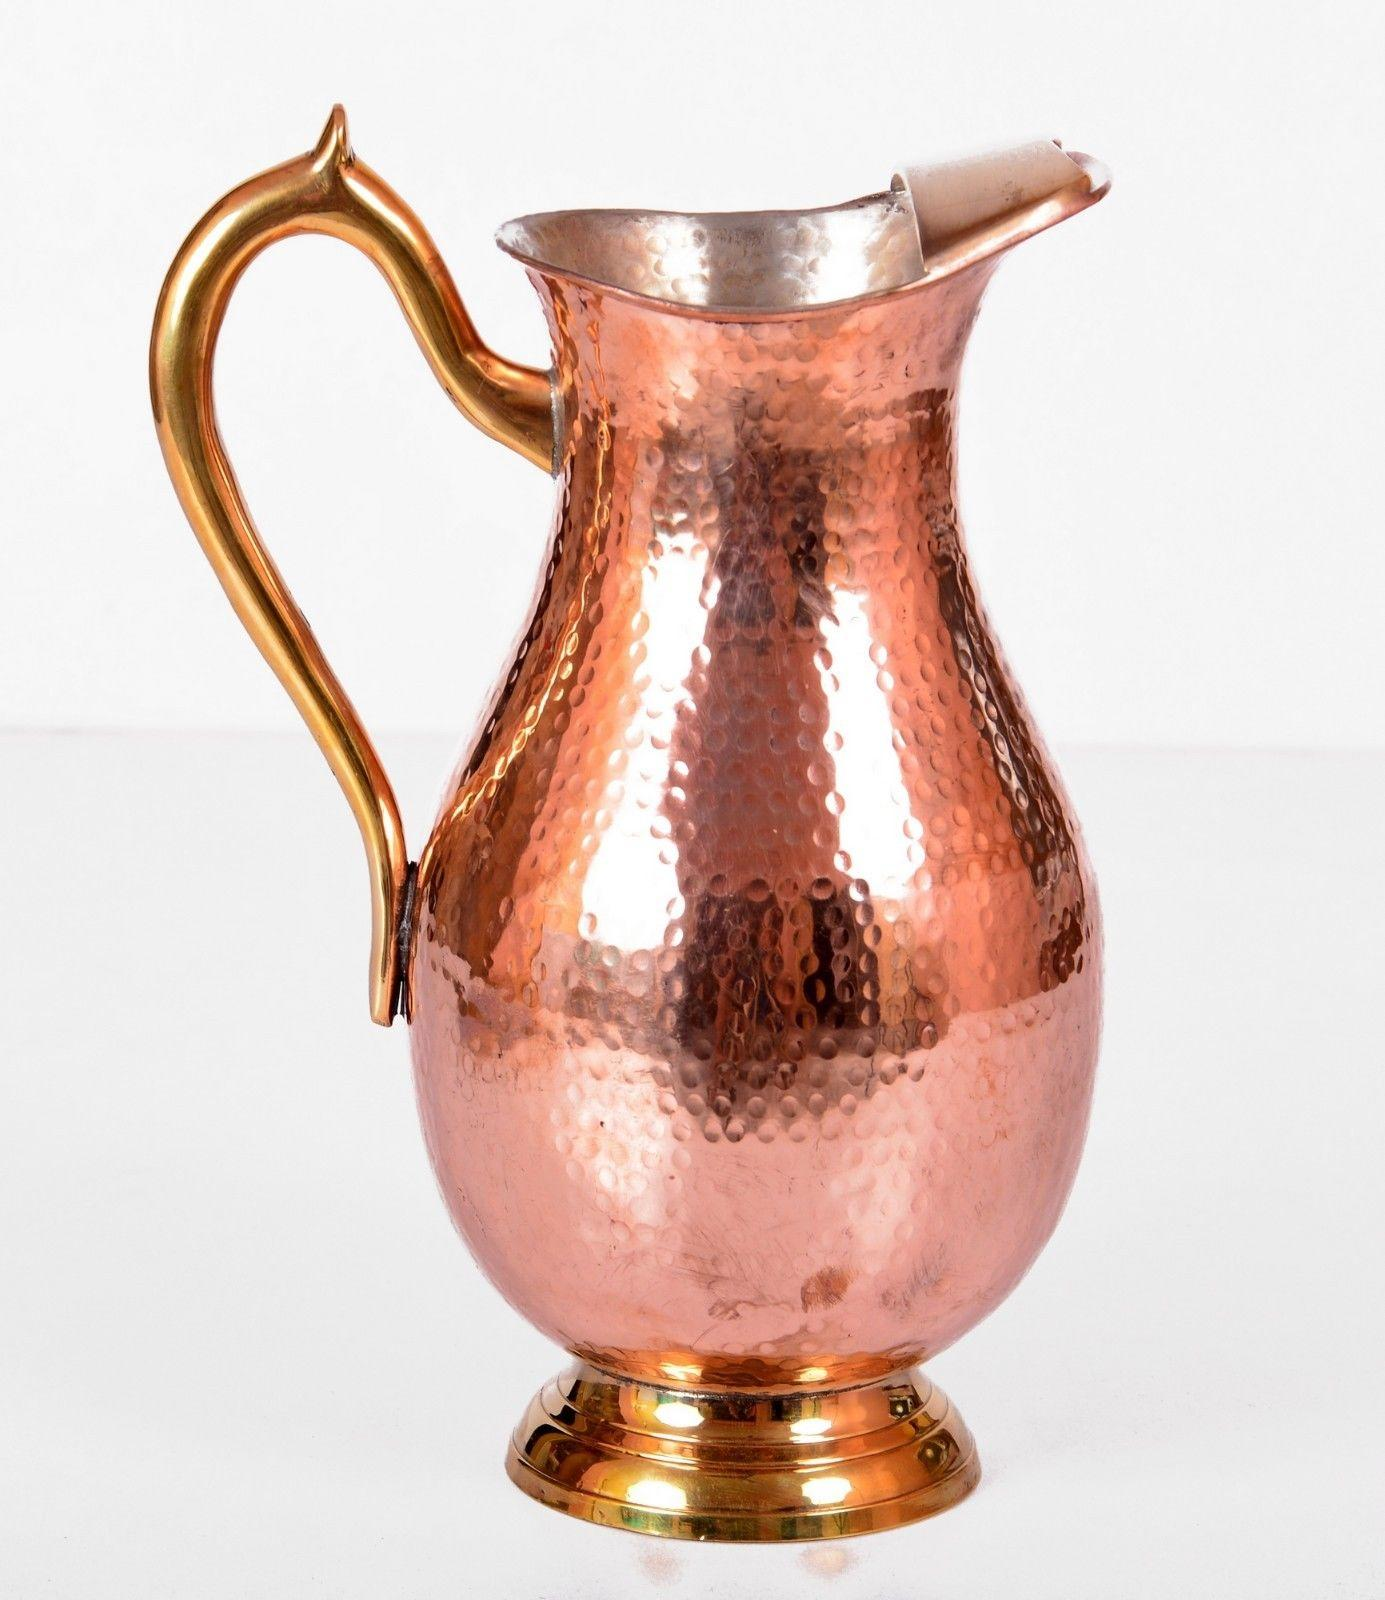 Indian Brass Copper Water Jug Health From Jaipurkalakendra On